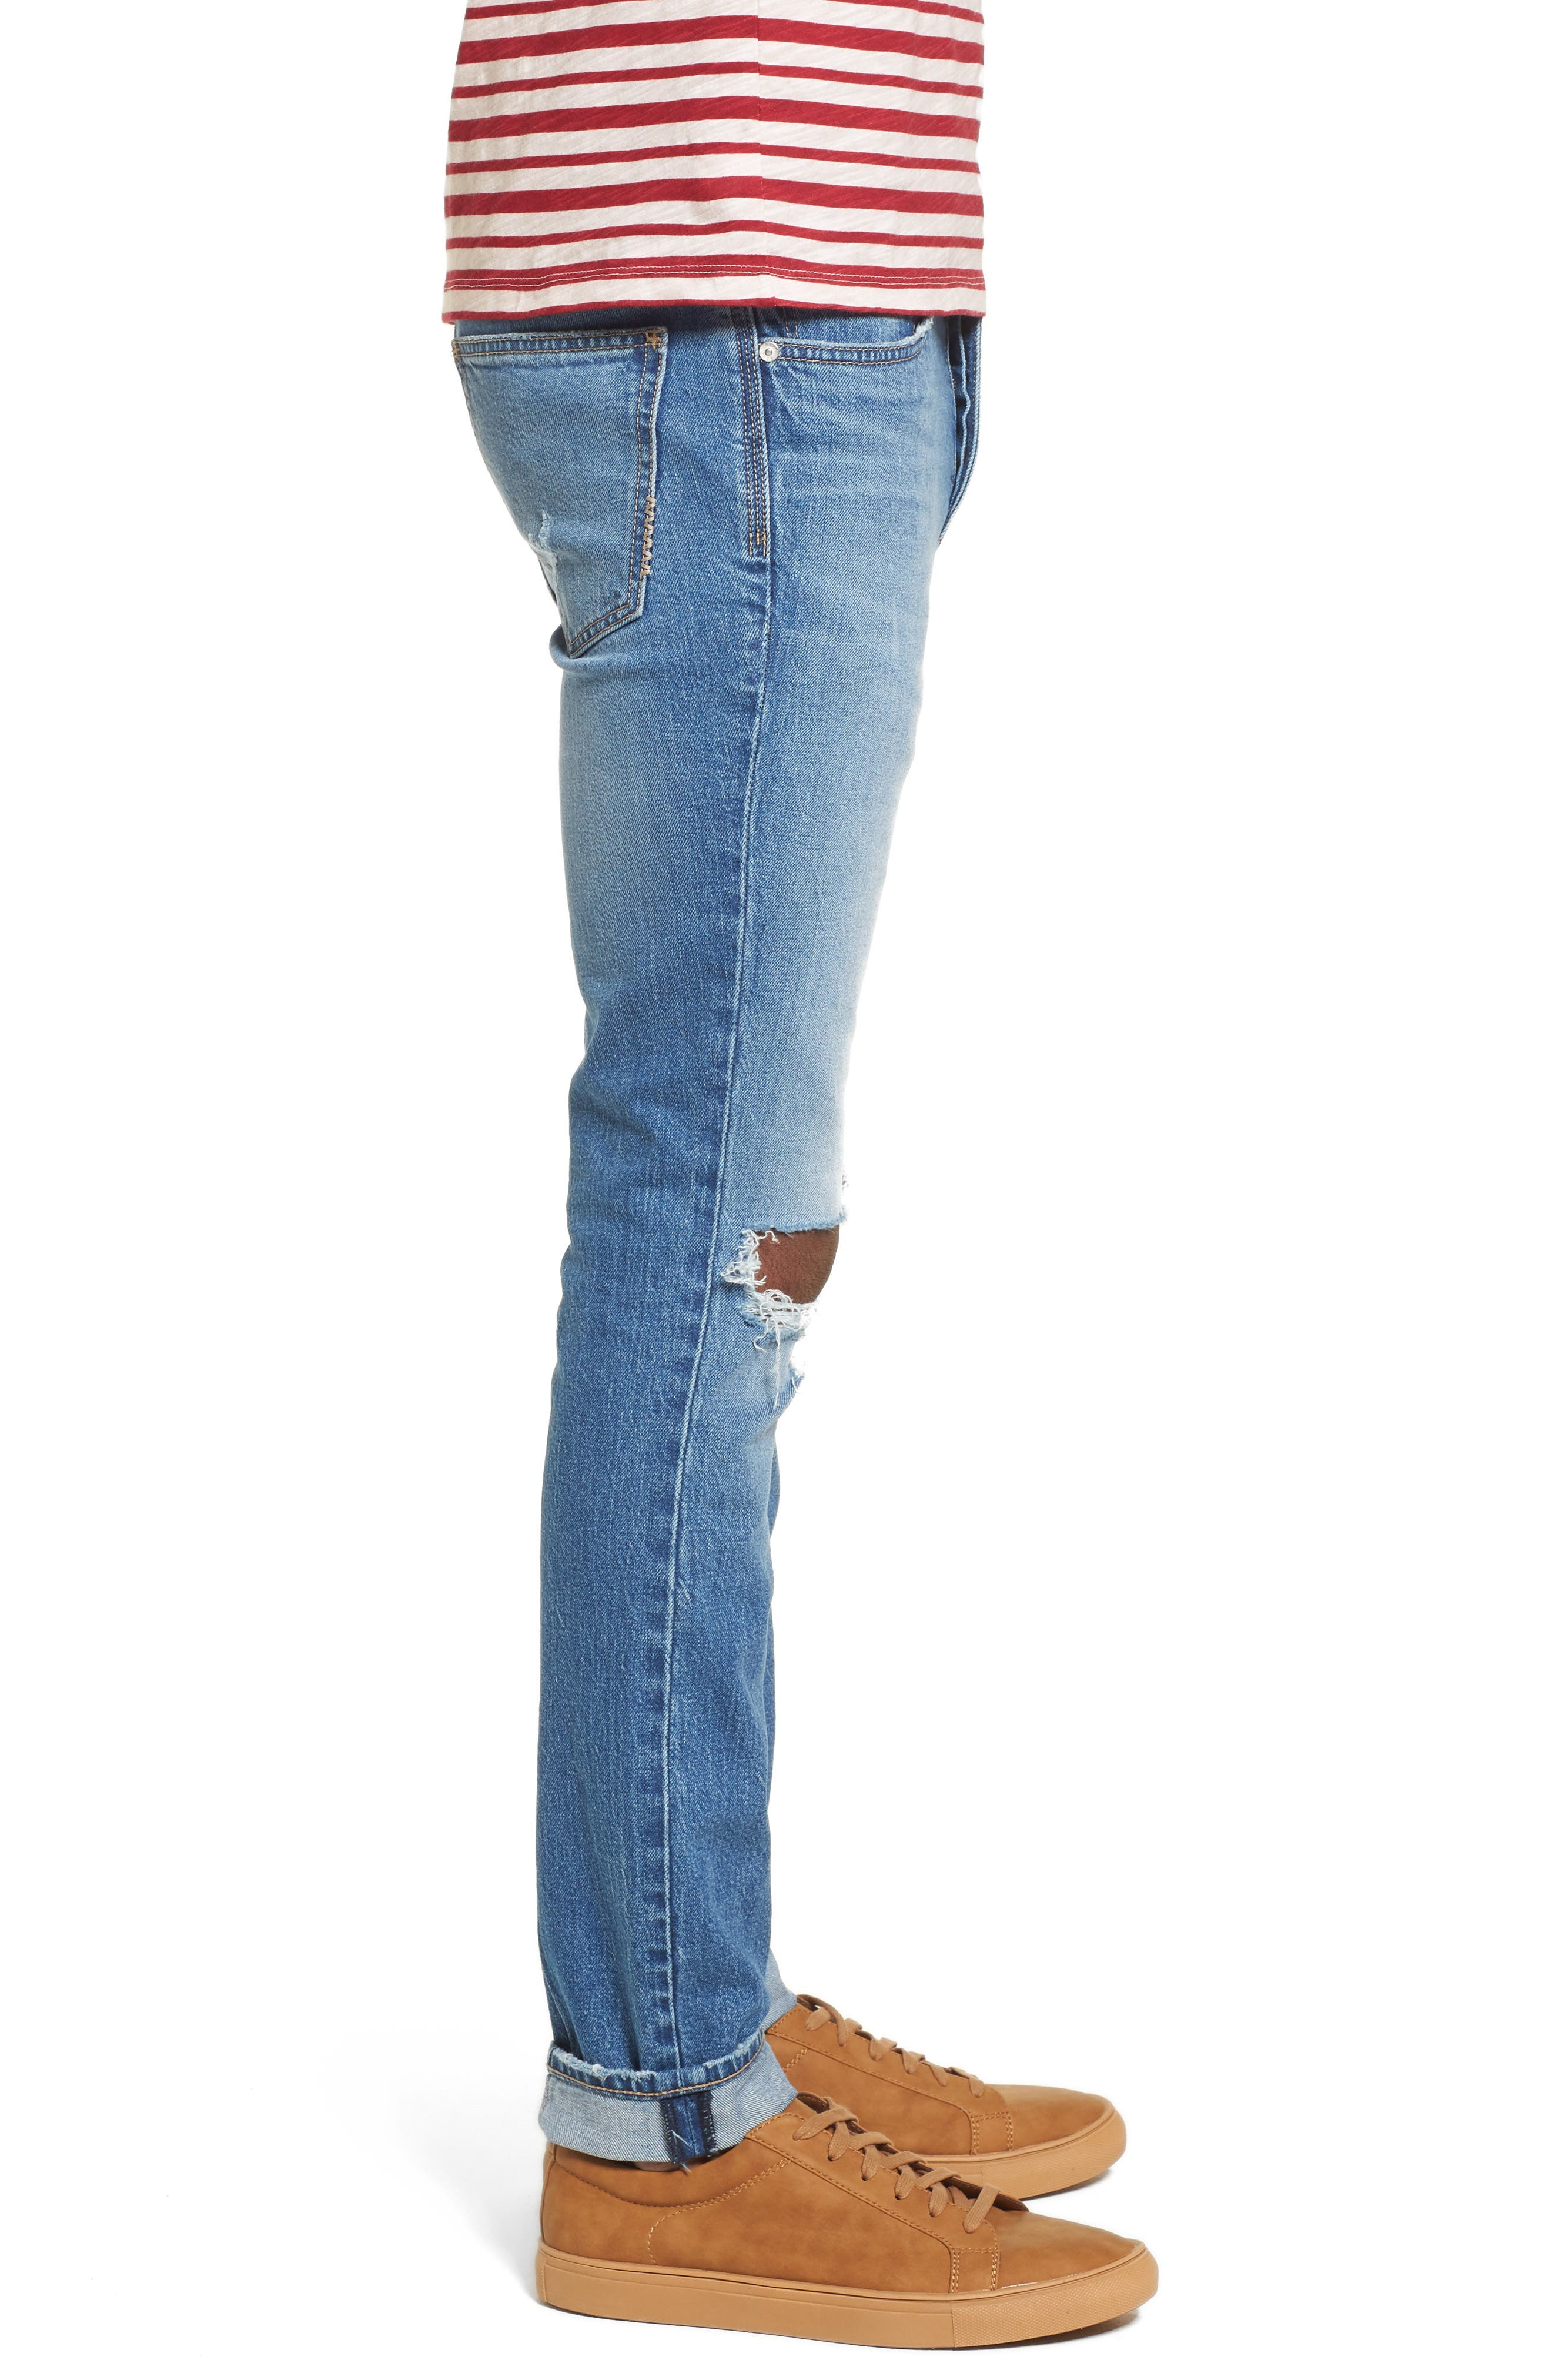 Iggy Skinny Fit Jeans,                             Alternate thumbnail 3, color,                             Broken Collector